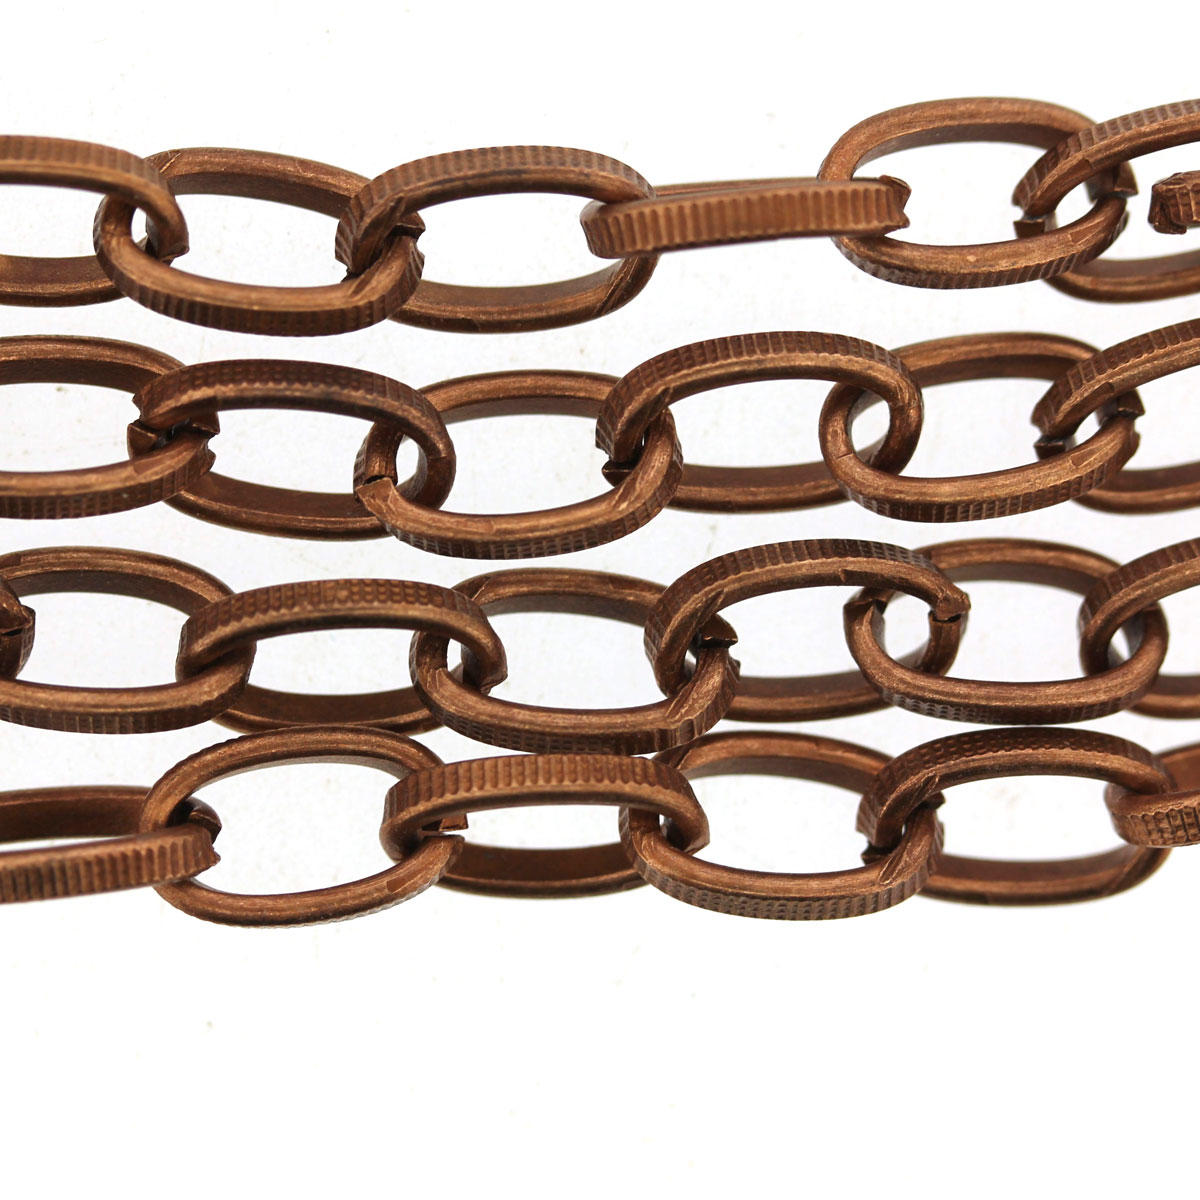 Oval Steel Strong Patterned Chain